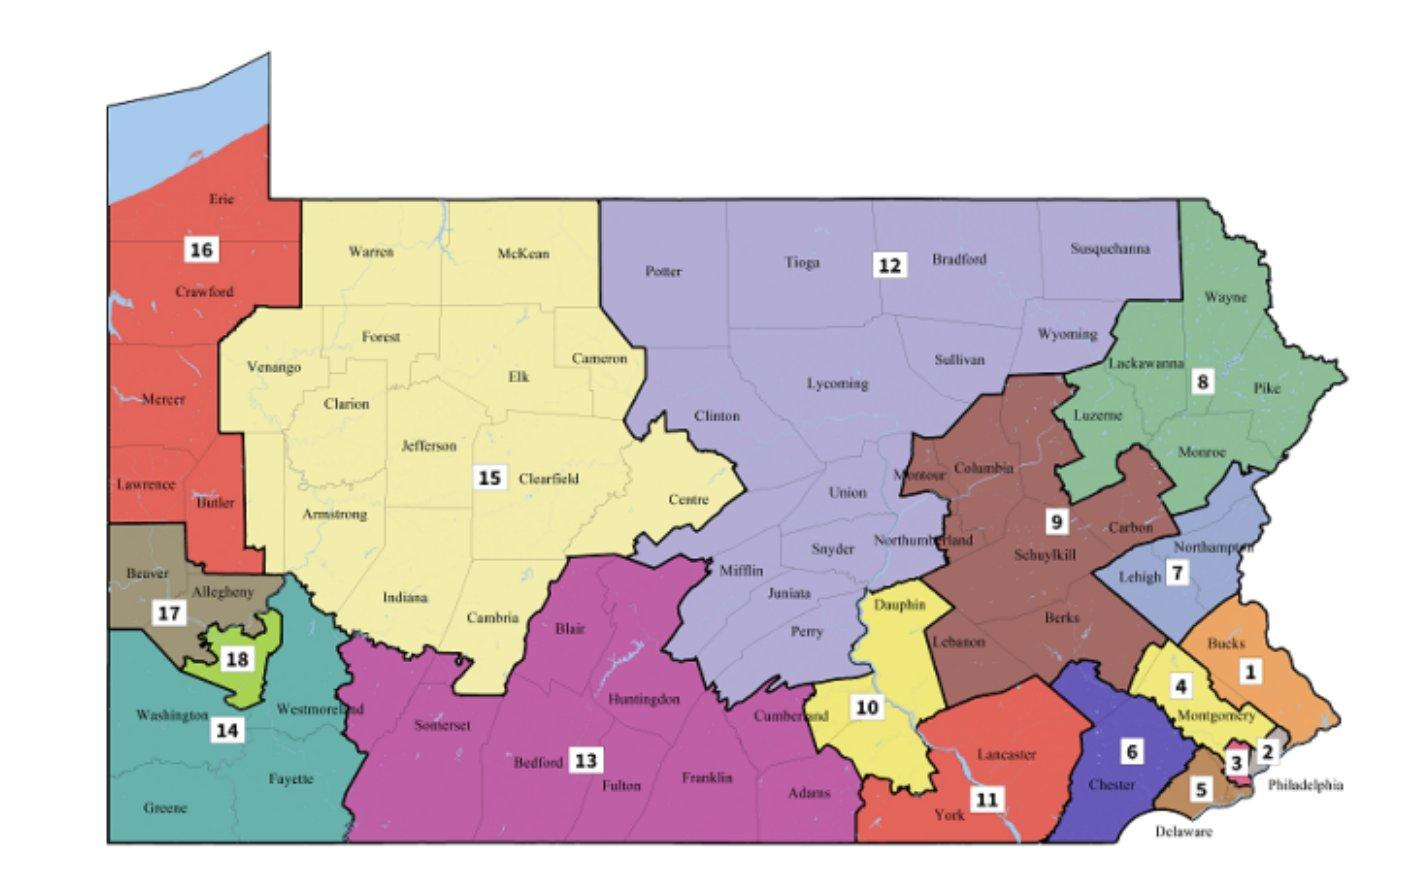 Some Candidates In, Others On Hold With Pa.'s Redistricted ... on al map, nys map, wv map, mi map, philadelphia map, ca map, ga map, delaware map, ar map, md map, ky map, fla map, de map, pennsylvania map, ohio map, oh map, state map, az map, usa map,